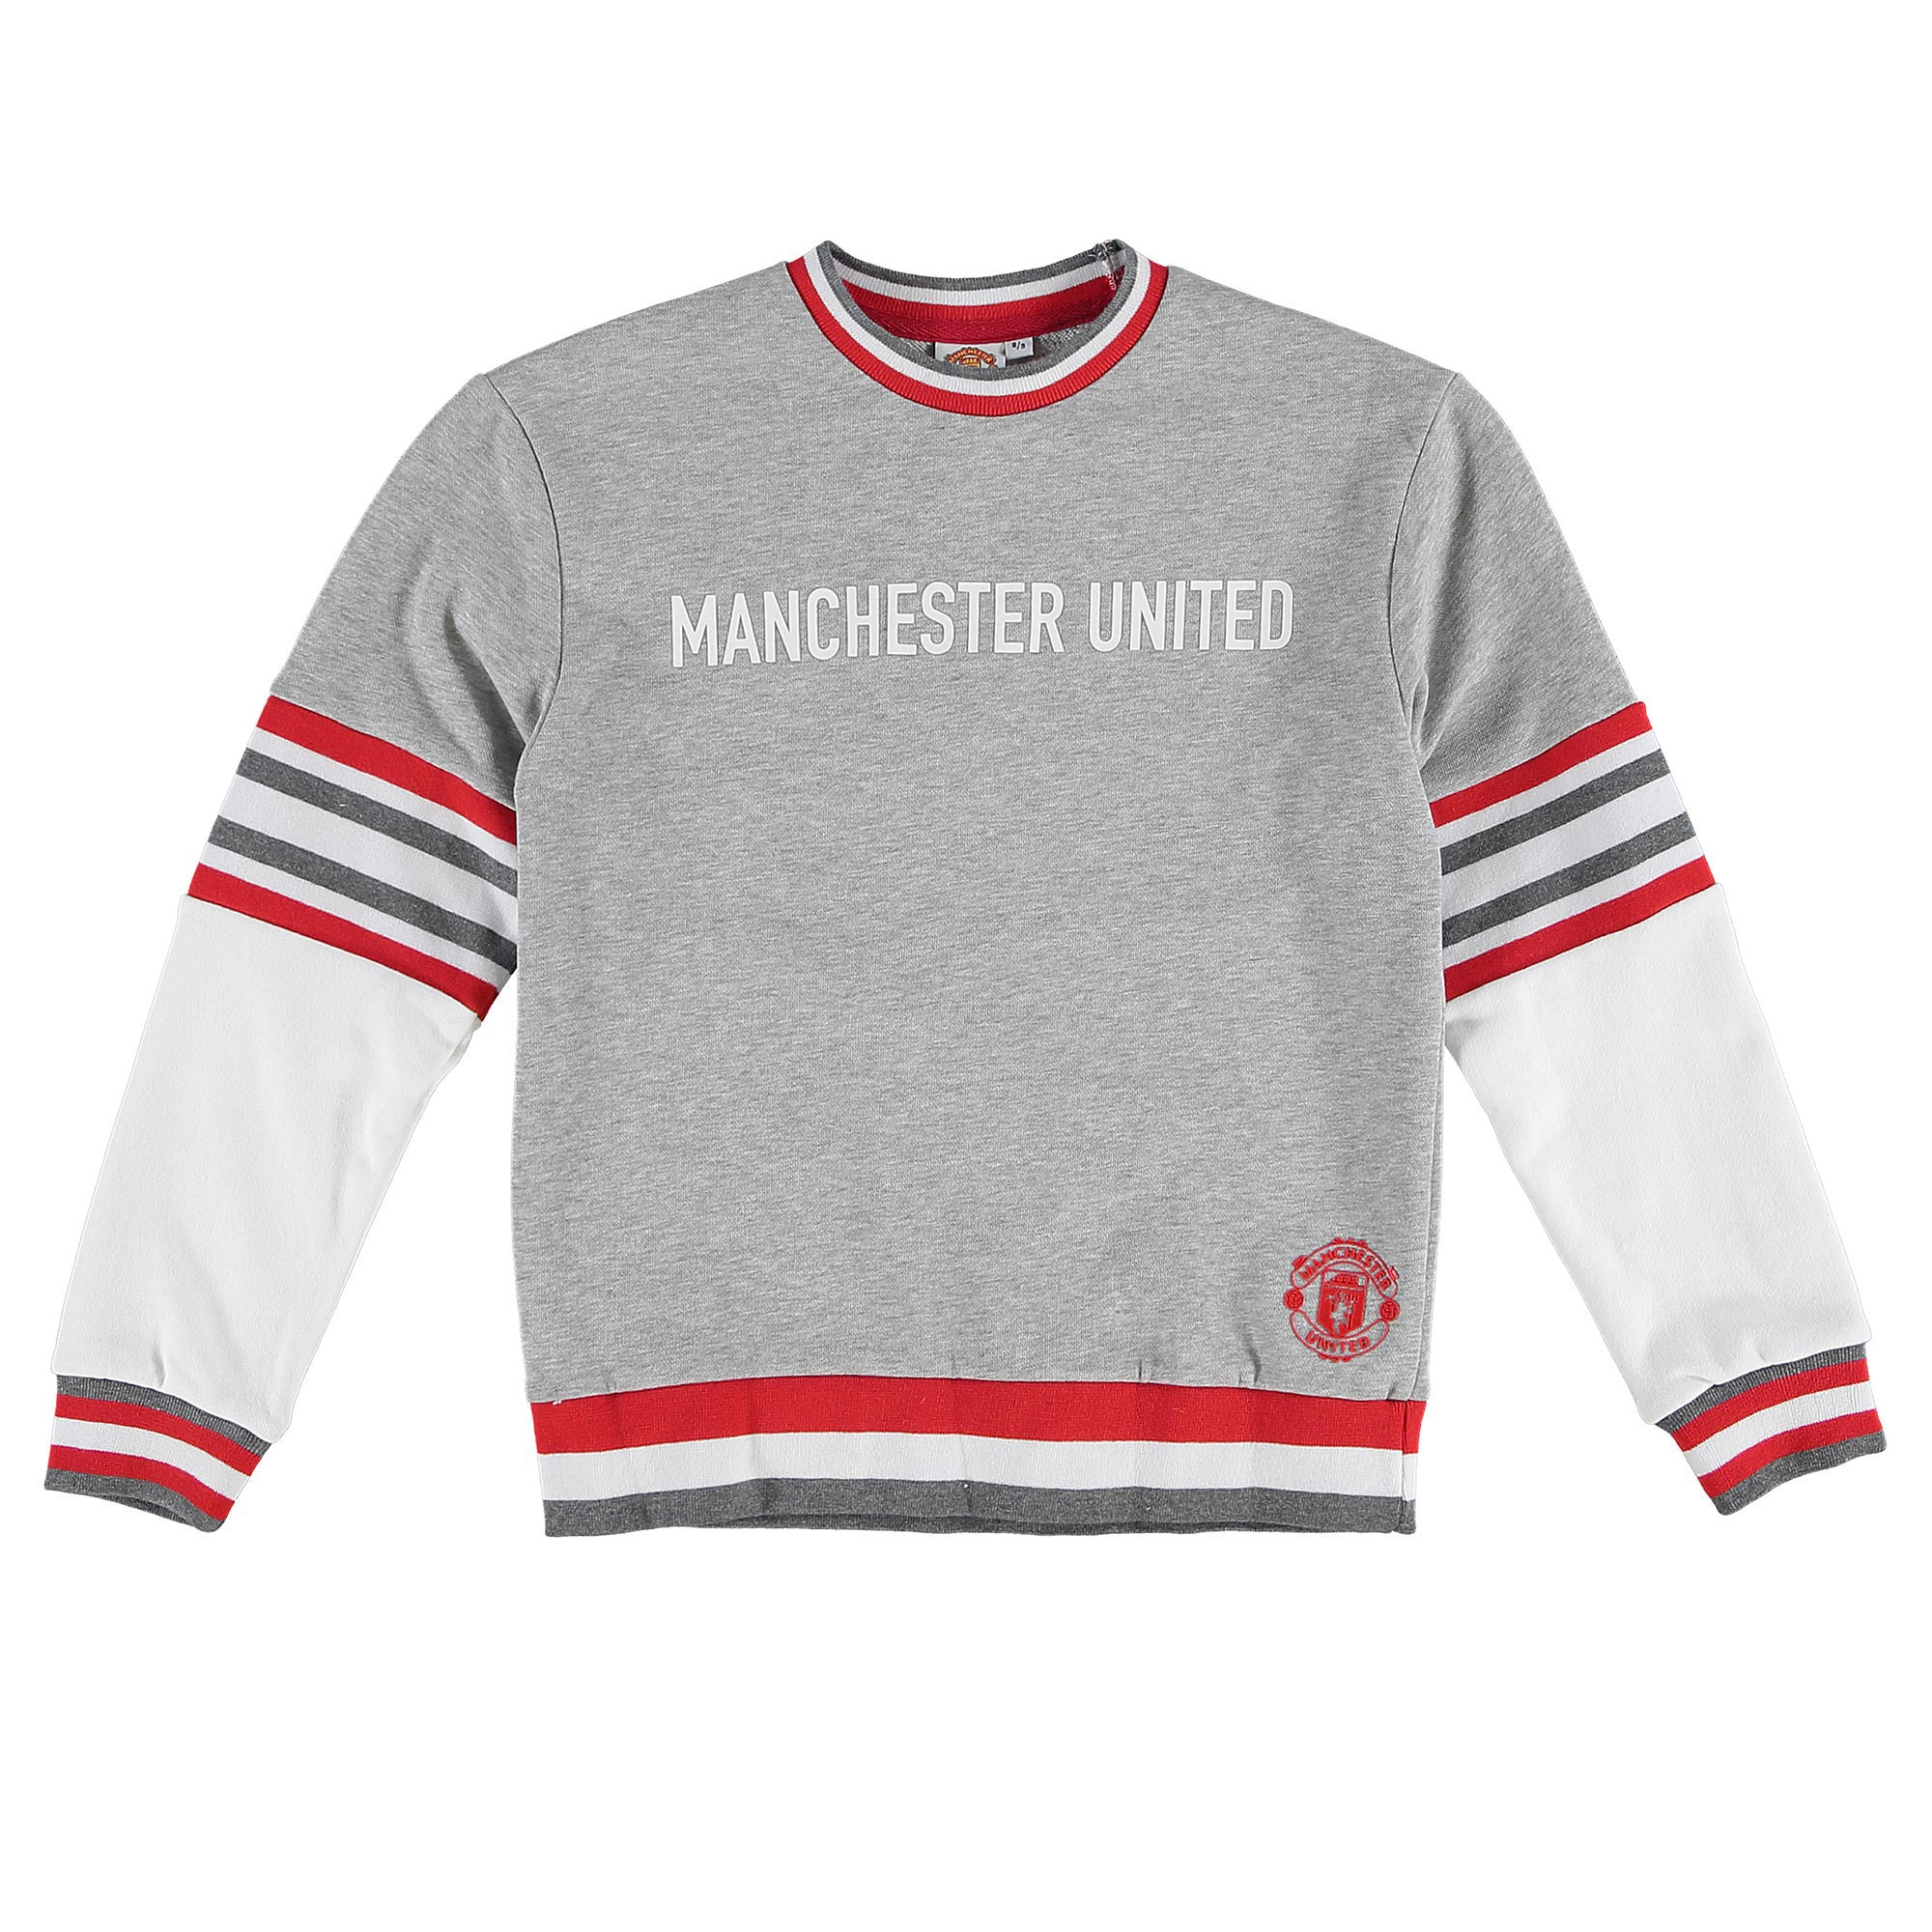 Manchester United Sports Sweatshirt - Grey - Girls